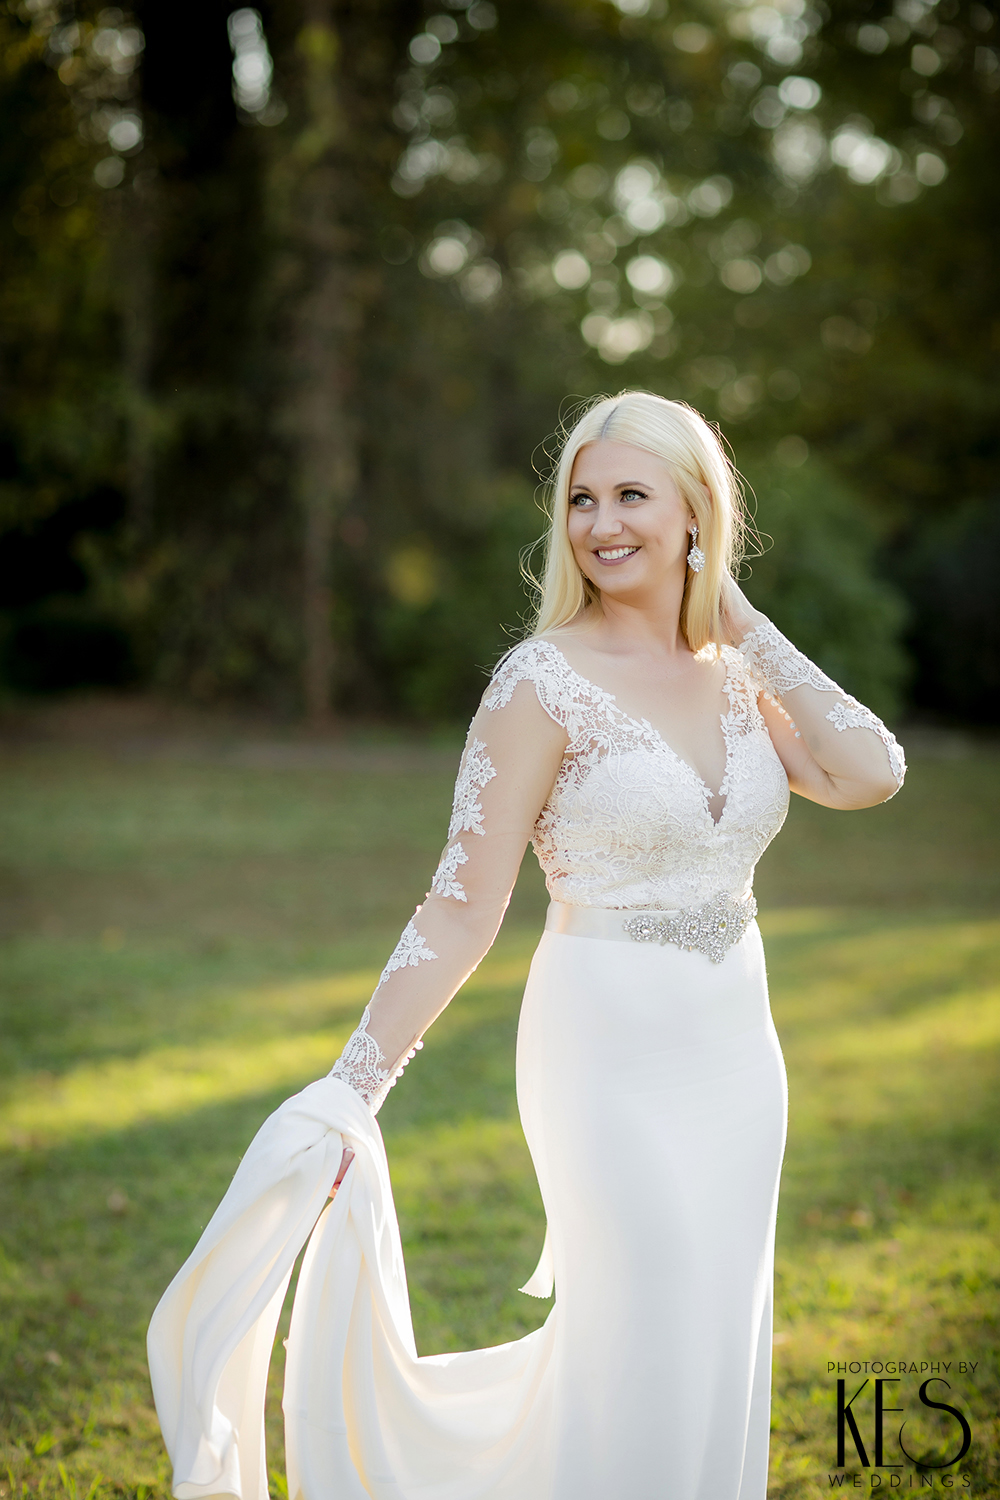 Marlsgate_Bridals_KES_Weddings_18.JPG